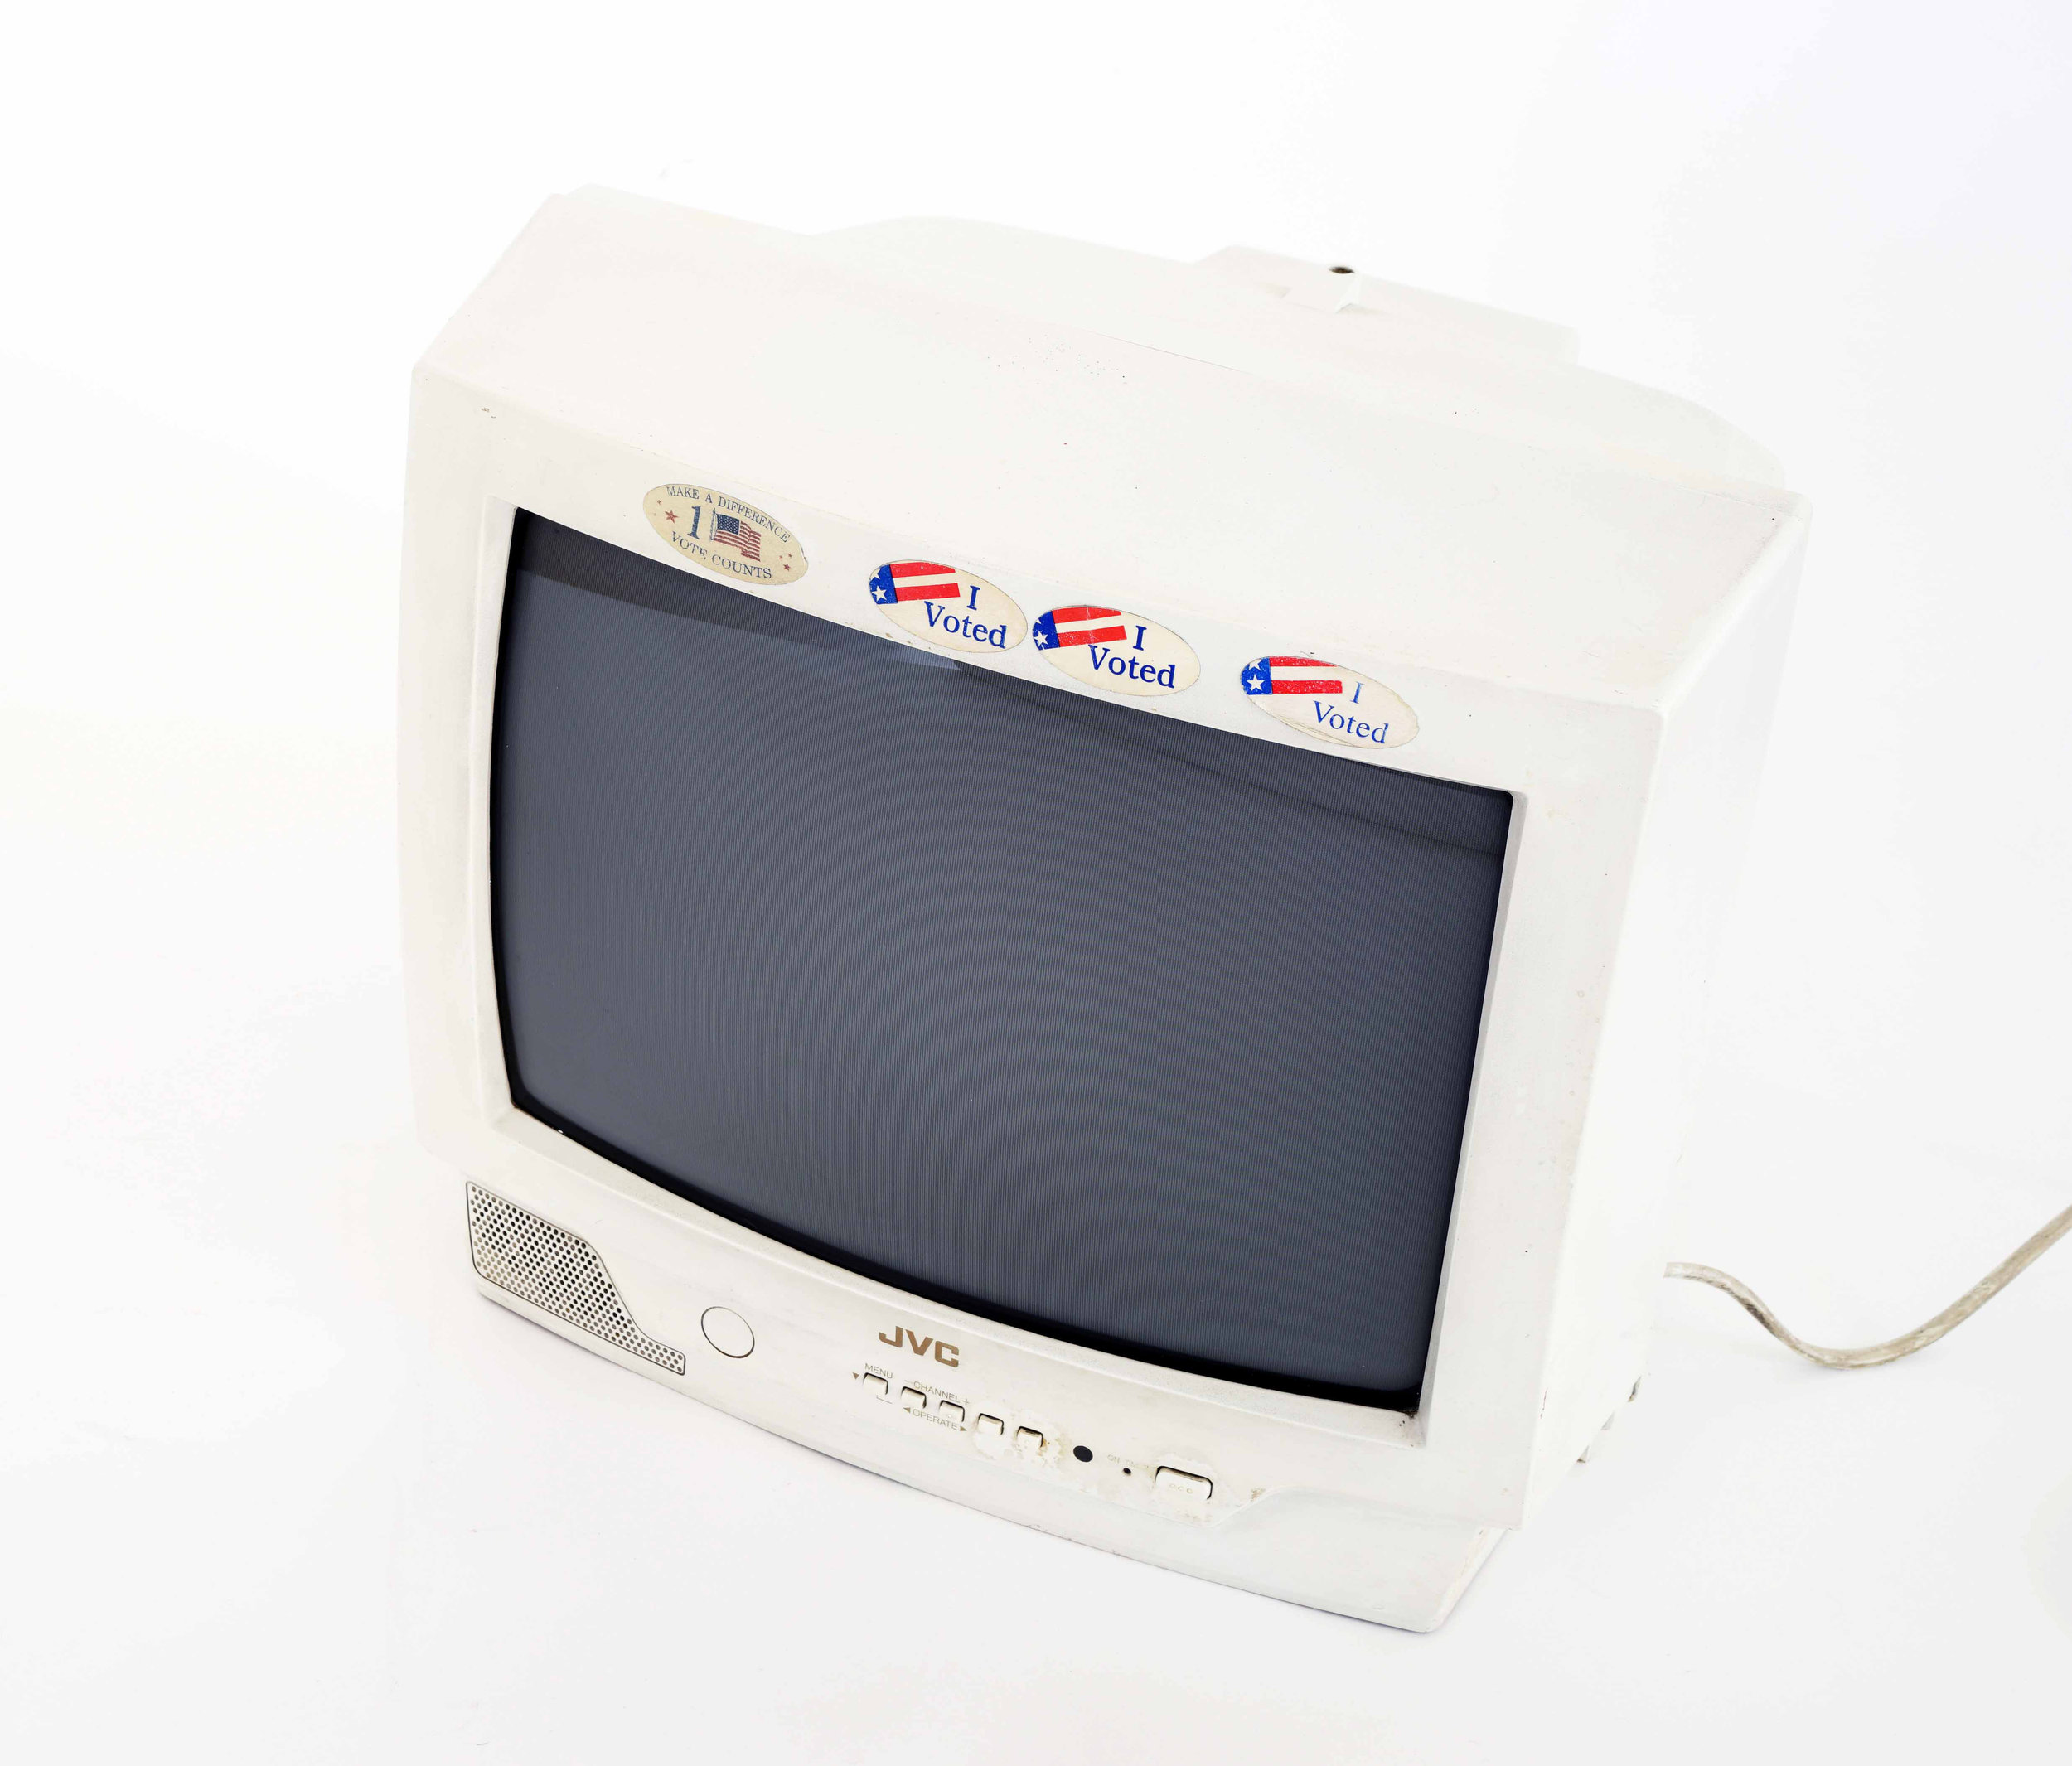 TV Once Owned By A Proud Immigrant Who Barely Speaks Any English_james berson1.jpg